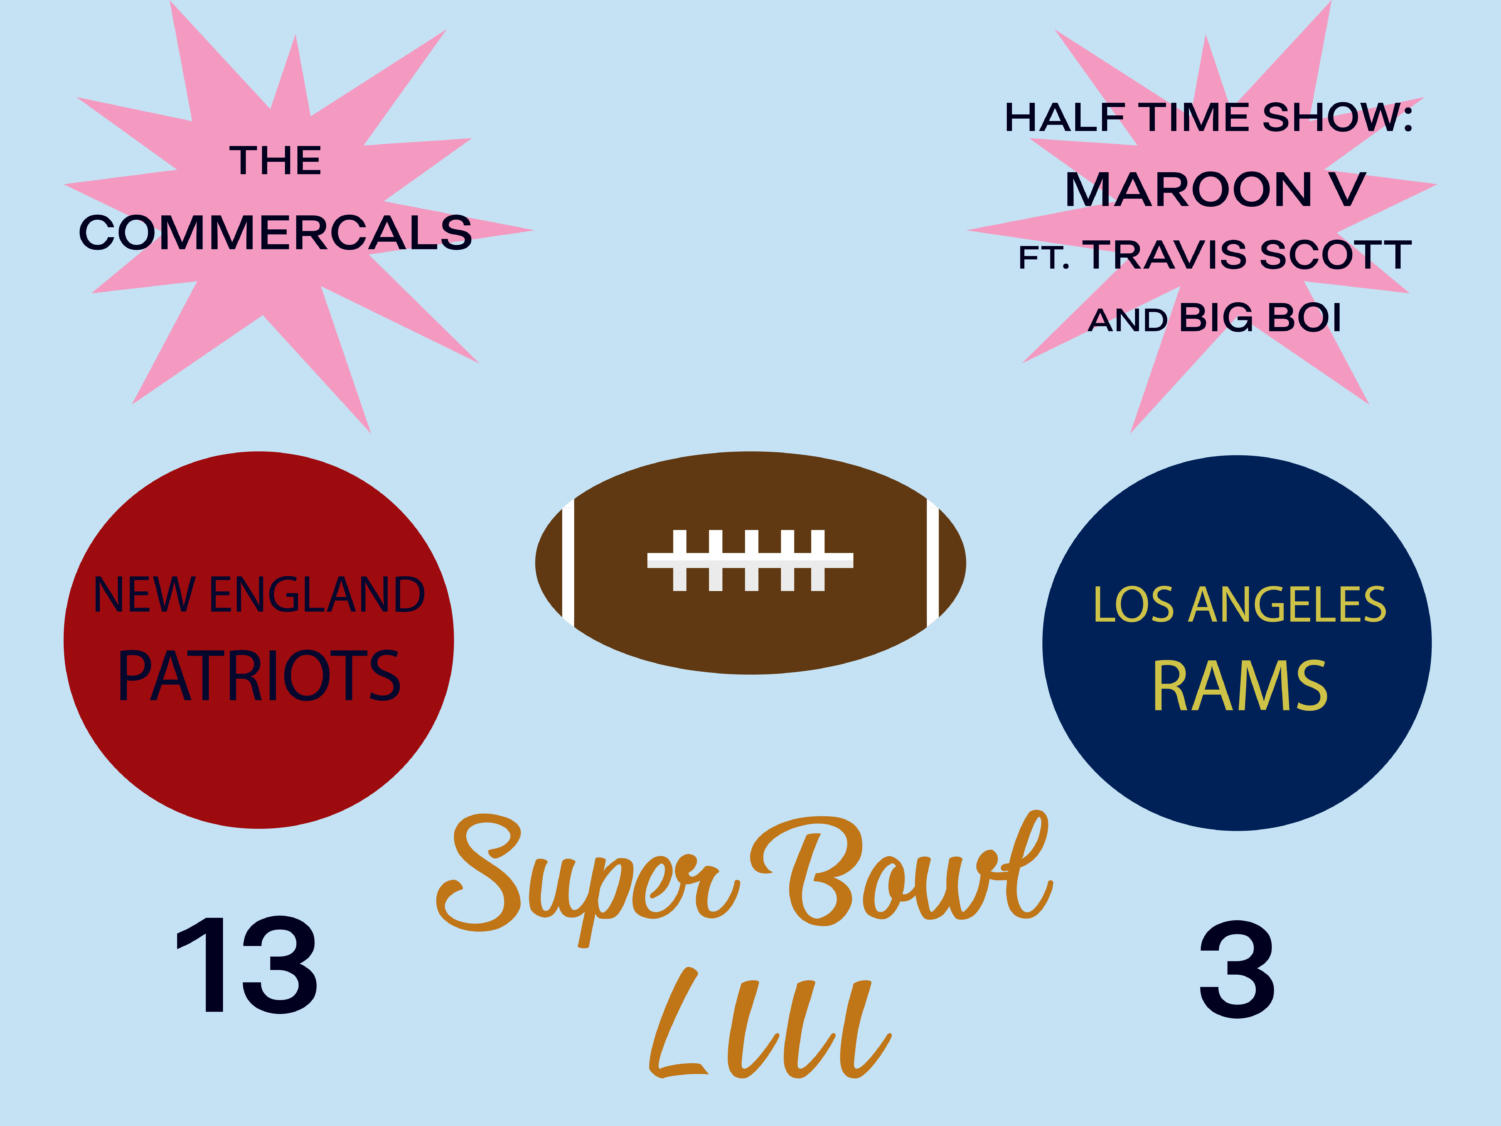 On Sunday, the New England Patriots faced the Los Angeles Rams for Super Bowl LIII. The underwhelming game ended in a score 13-3 Patriots, making it the the lowest scoring Super Bowl in history.